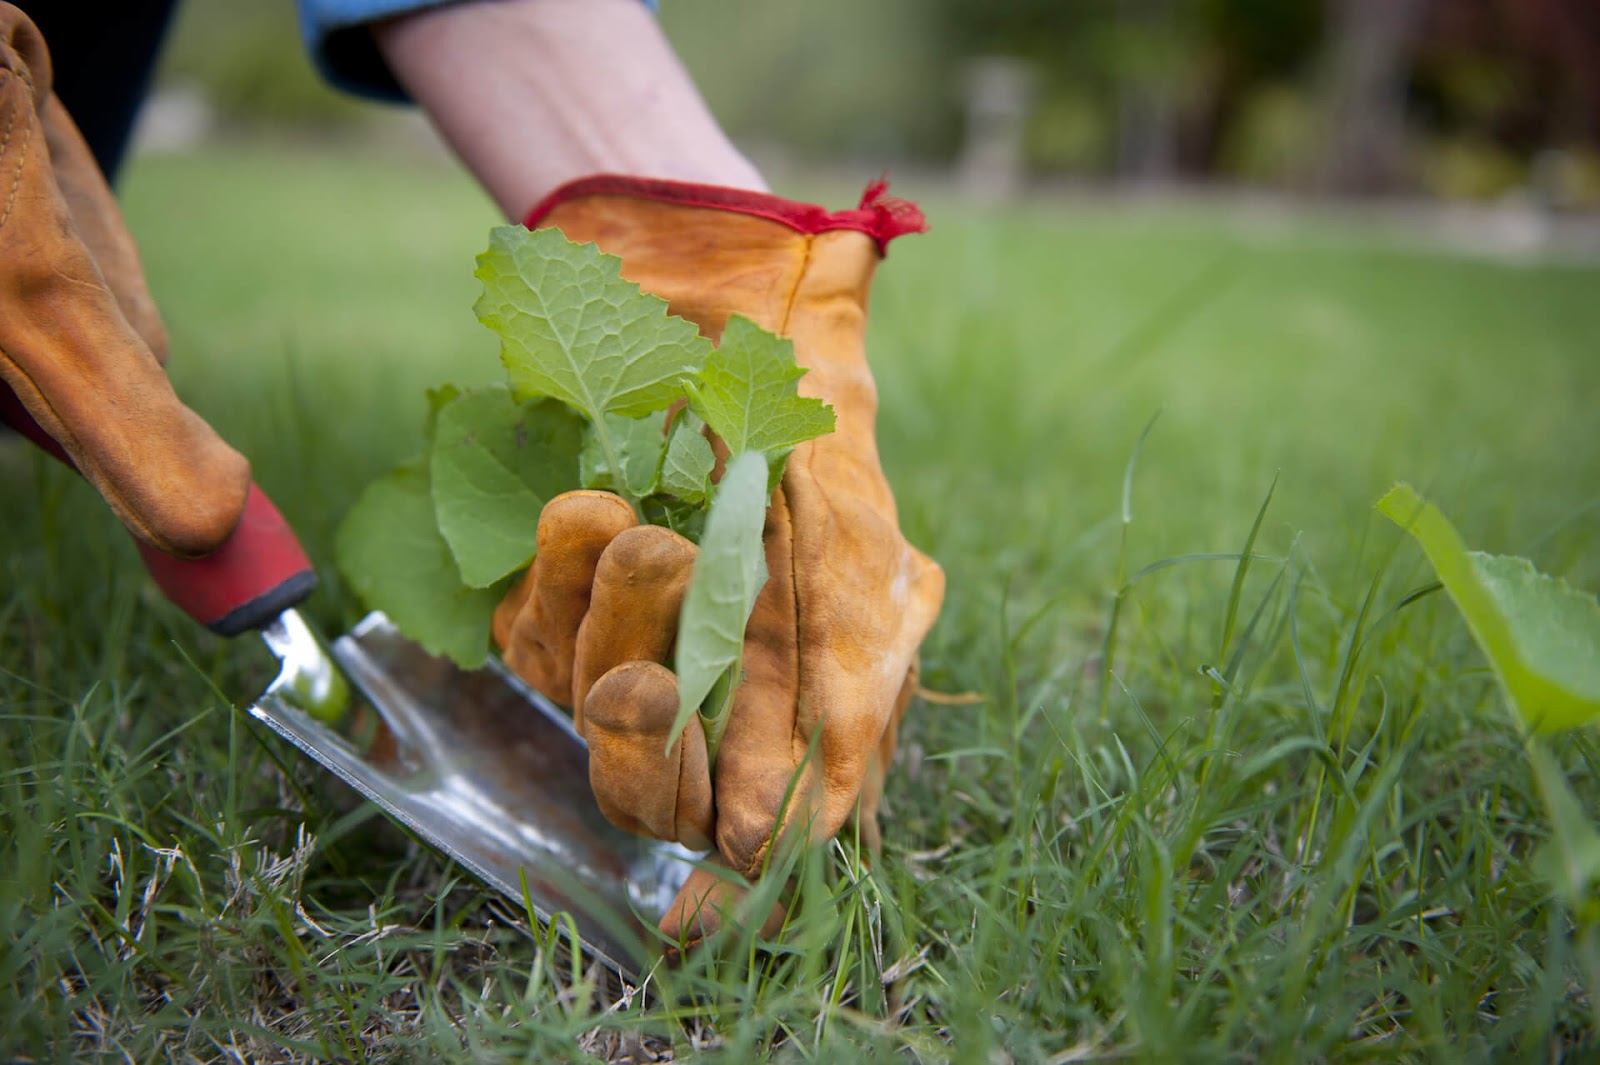 Hand pulling weeds out of the lawn